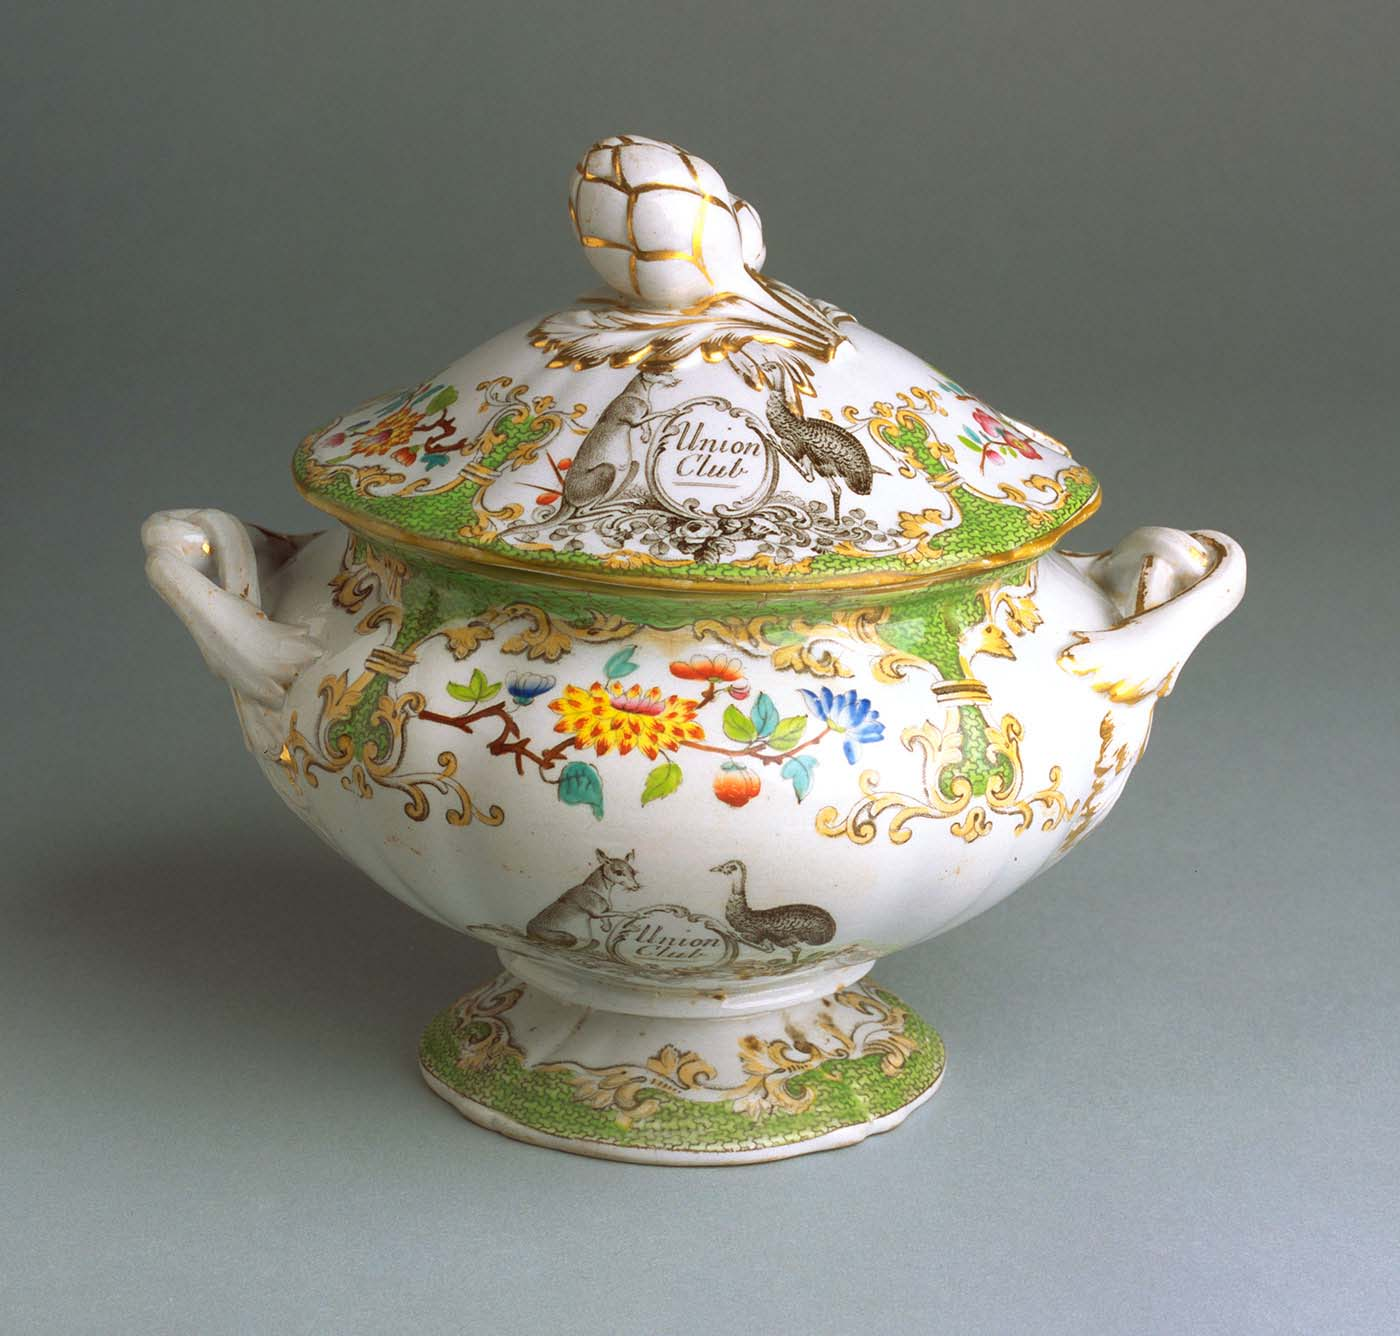 Soup tureen with a white base and gold-rimmed lid and handles. The tureen is adorned with elaborate imagery including flowers and curlicules. A black and white kangaroo and emu appear in a stylised coat of arms with 'Union Club' printed in between. - click to view larger image